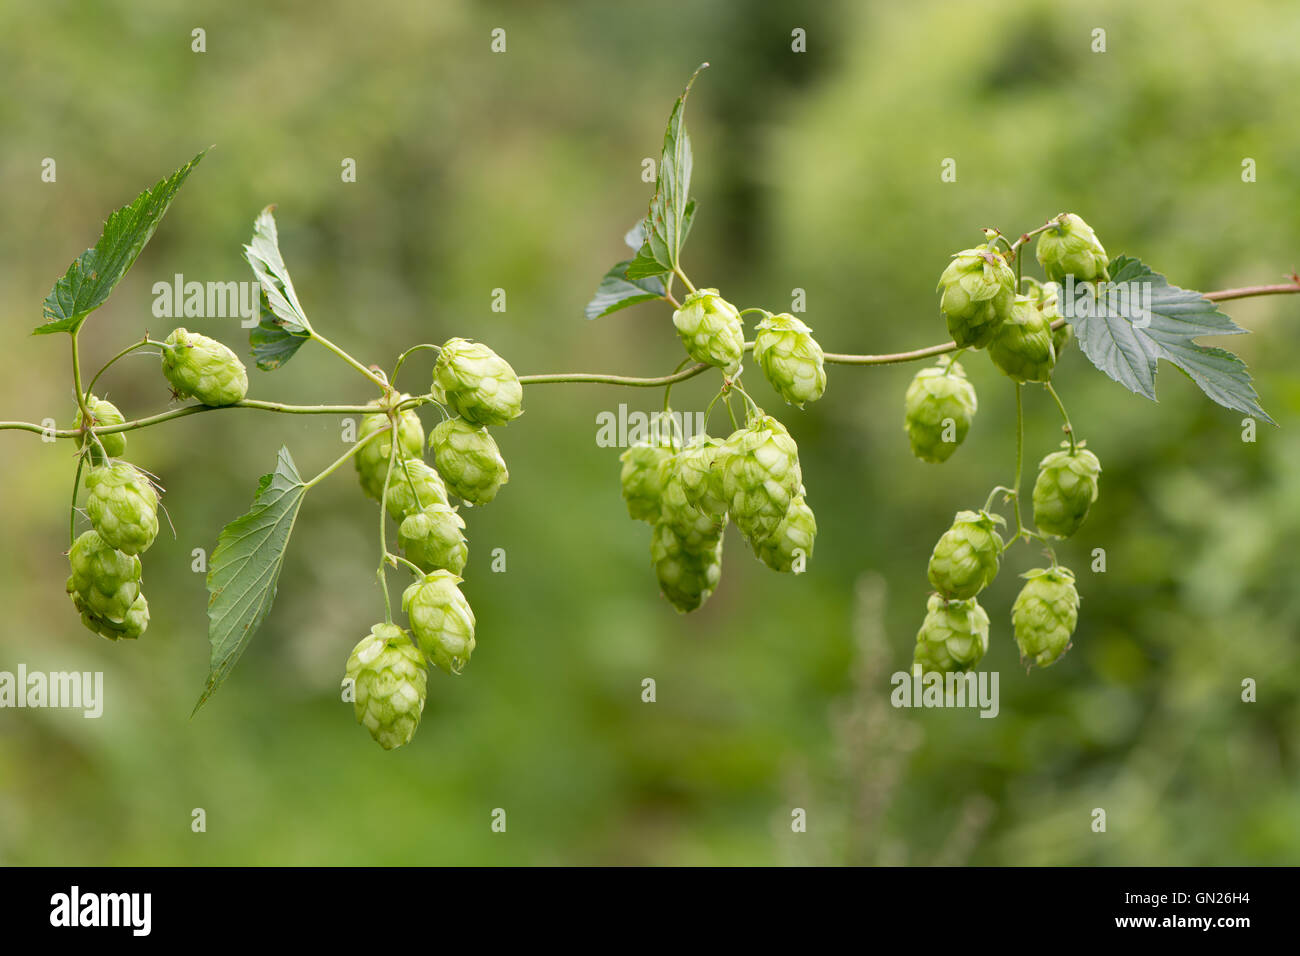 Hops (Humulus lupulus) flowers on vine. Green pendulous flowers on climbing plant in the family Cannabaceae, hanging - Stock Image